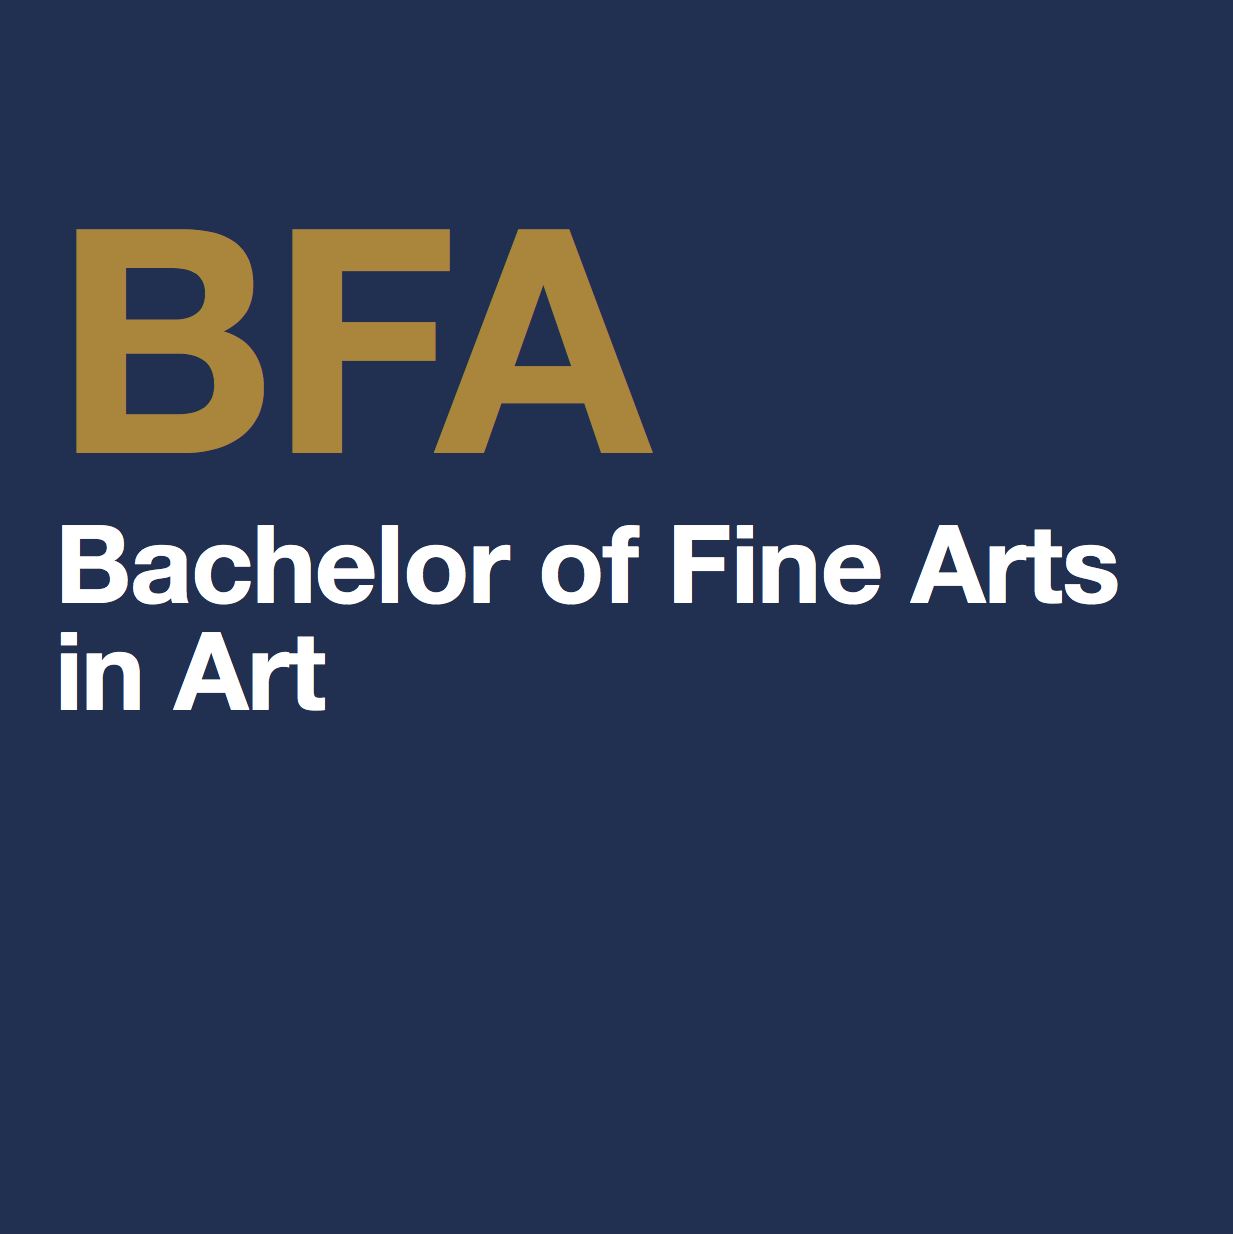 Scholarships For College Students 2016 >> Bachelor of Fine Arts in Art - Department of Art + Art History